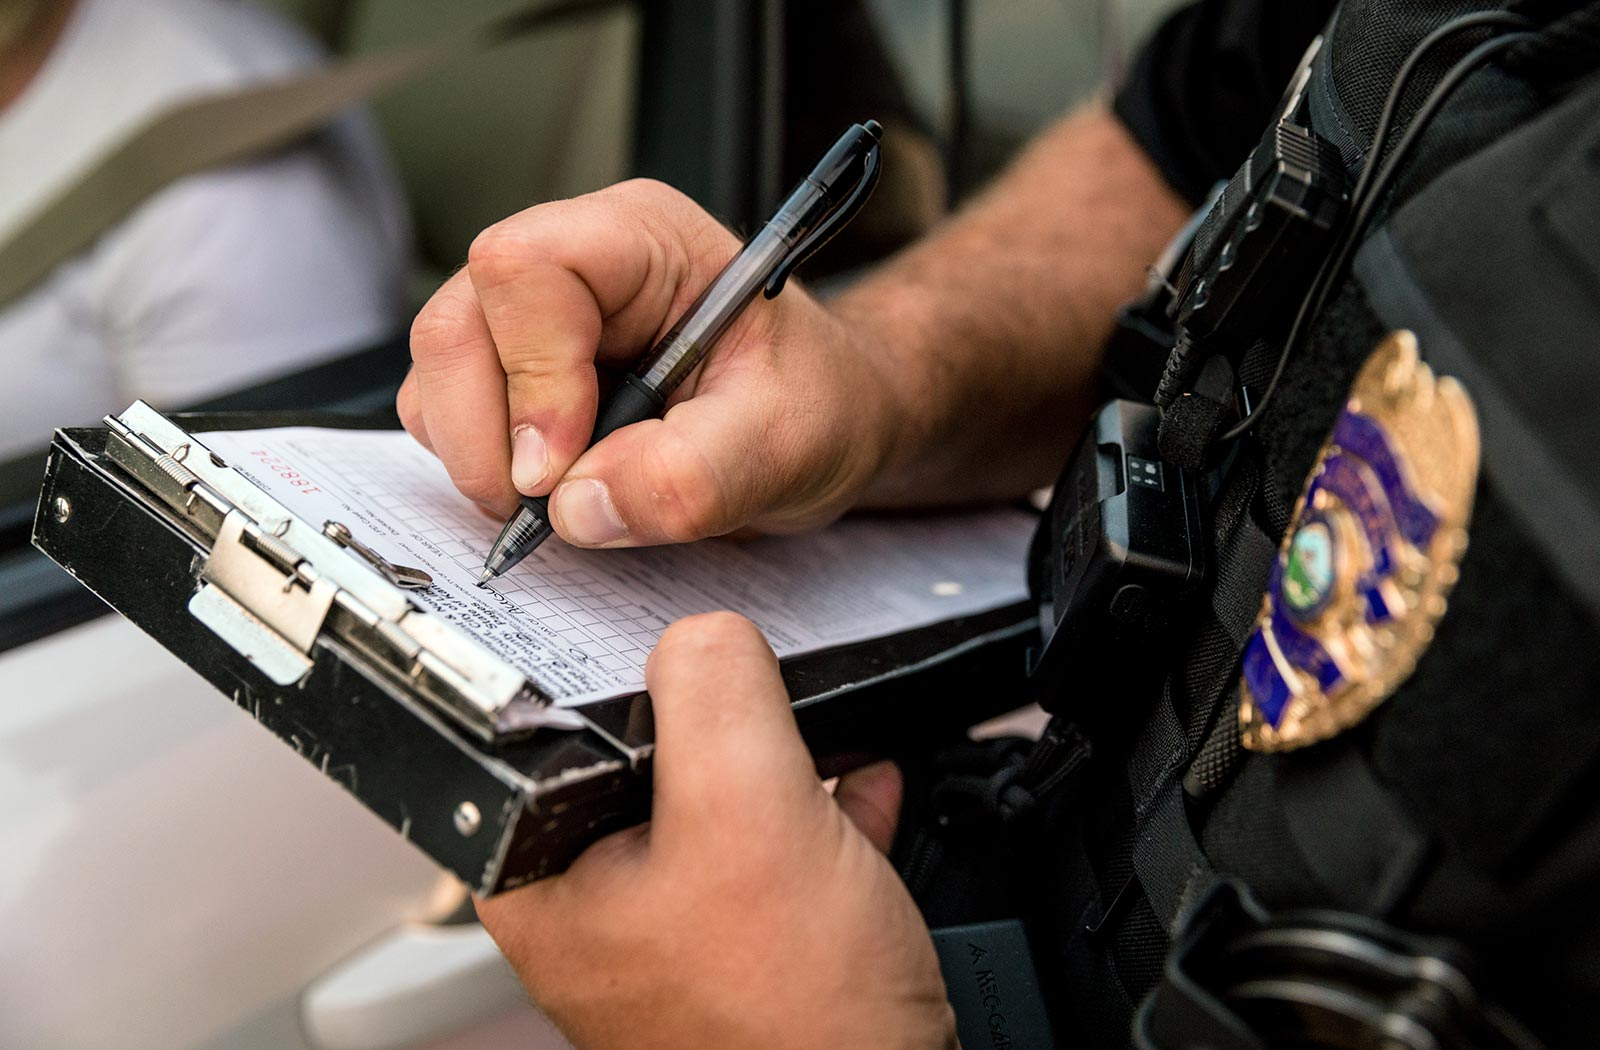 Police officer writing information on a pad